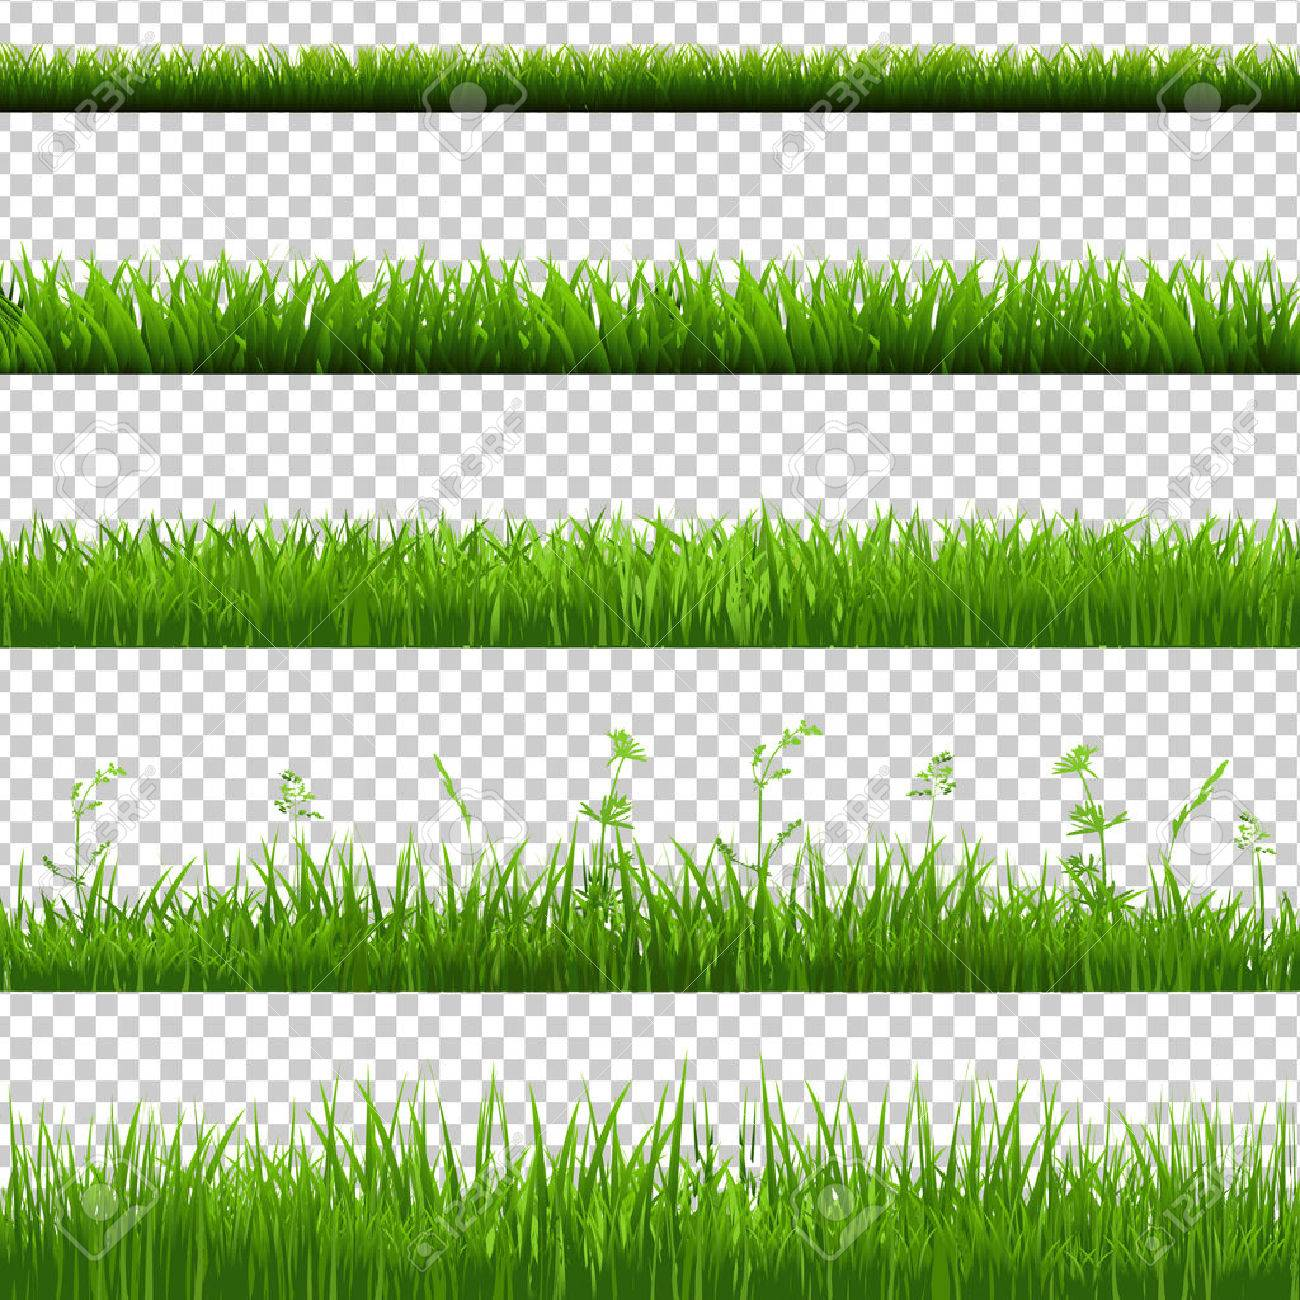 Green Grass Borders Big Set, Isolated on Transparent Background, Vector Illustration - 55086458